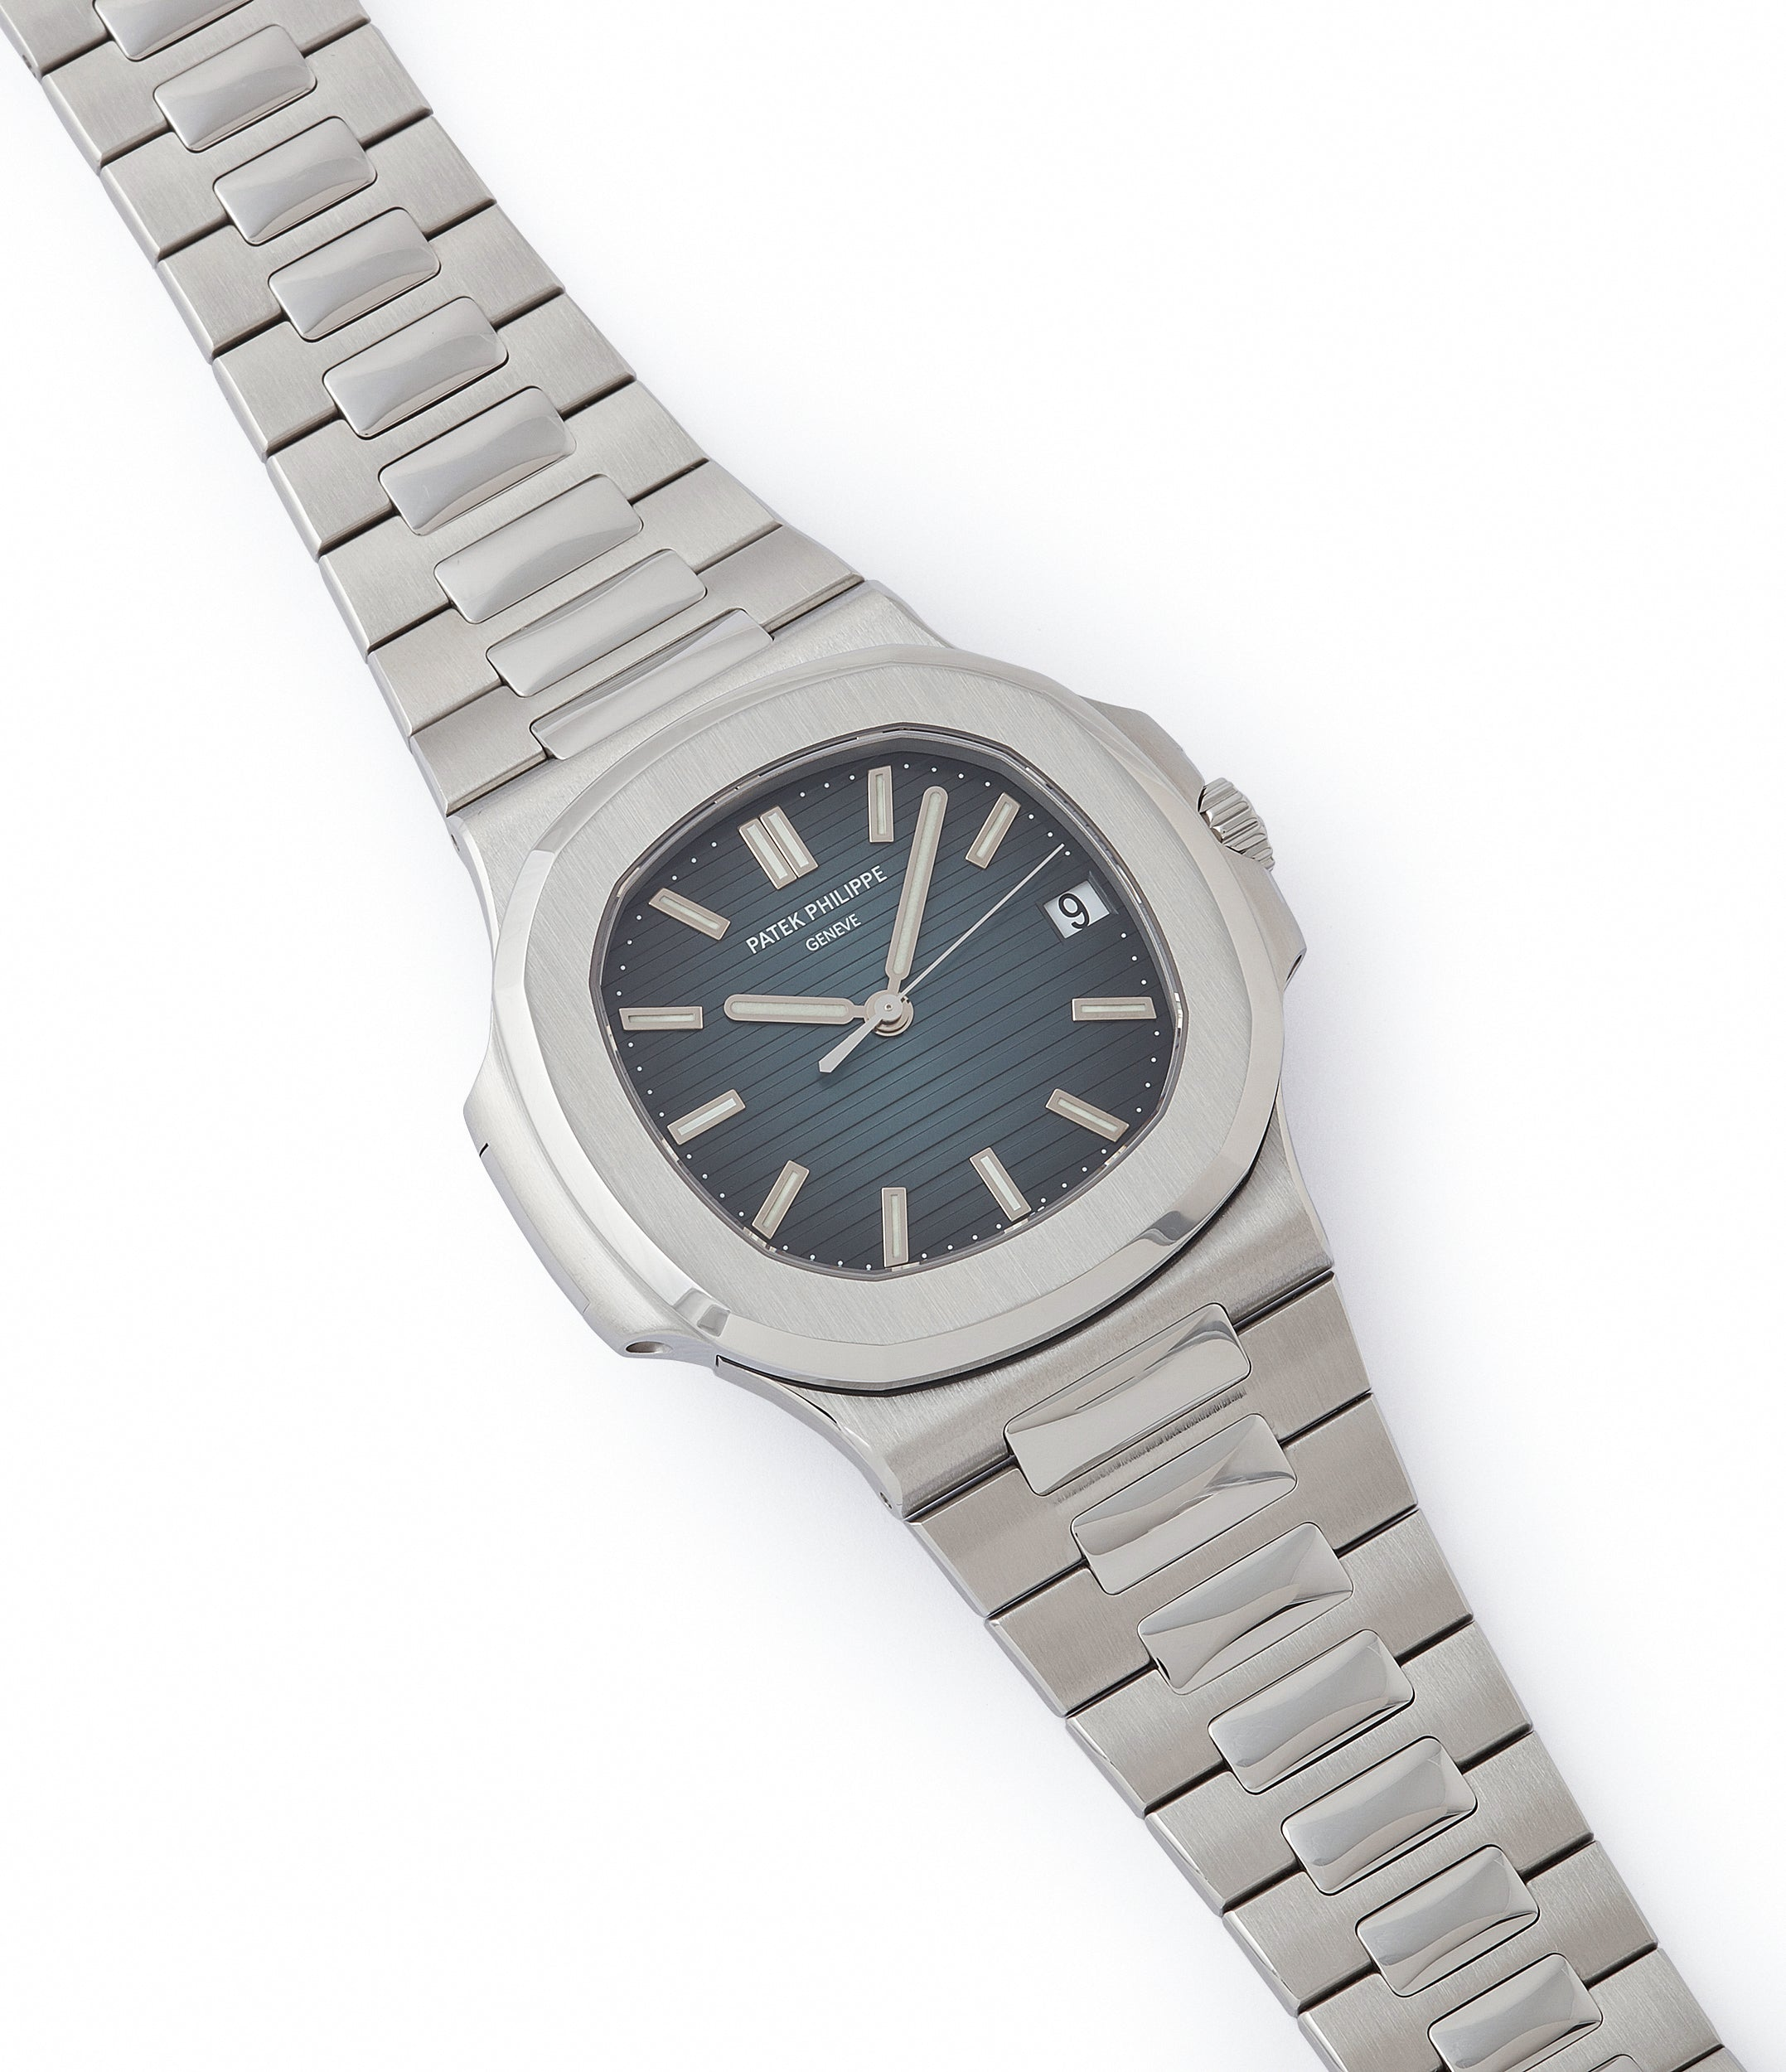 selling Patek Philippe Jumbo Nautilus 5711/1A-001 steel pre-owned sport watch for sale online at A Collected Man London UK specialist of rare watches